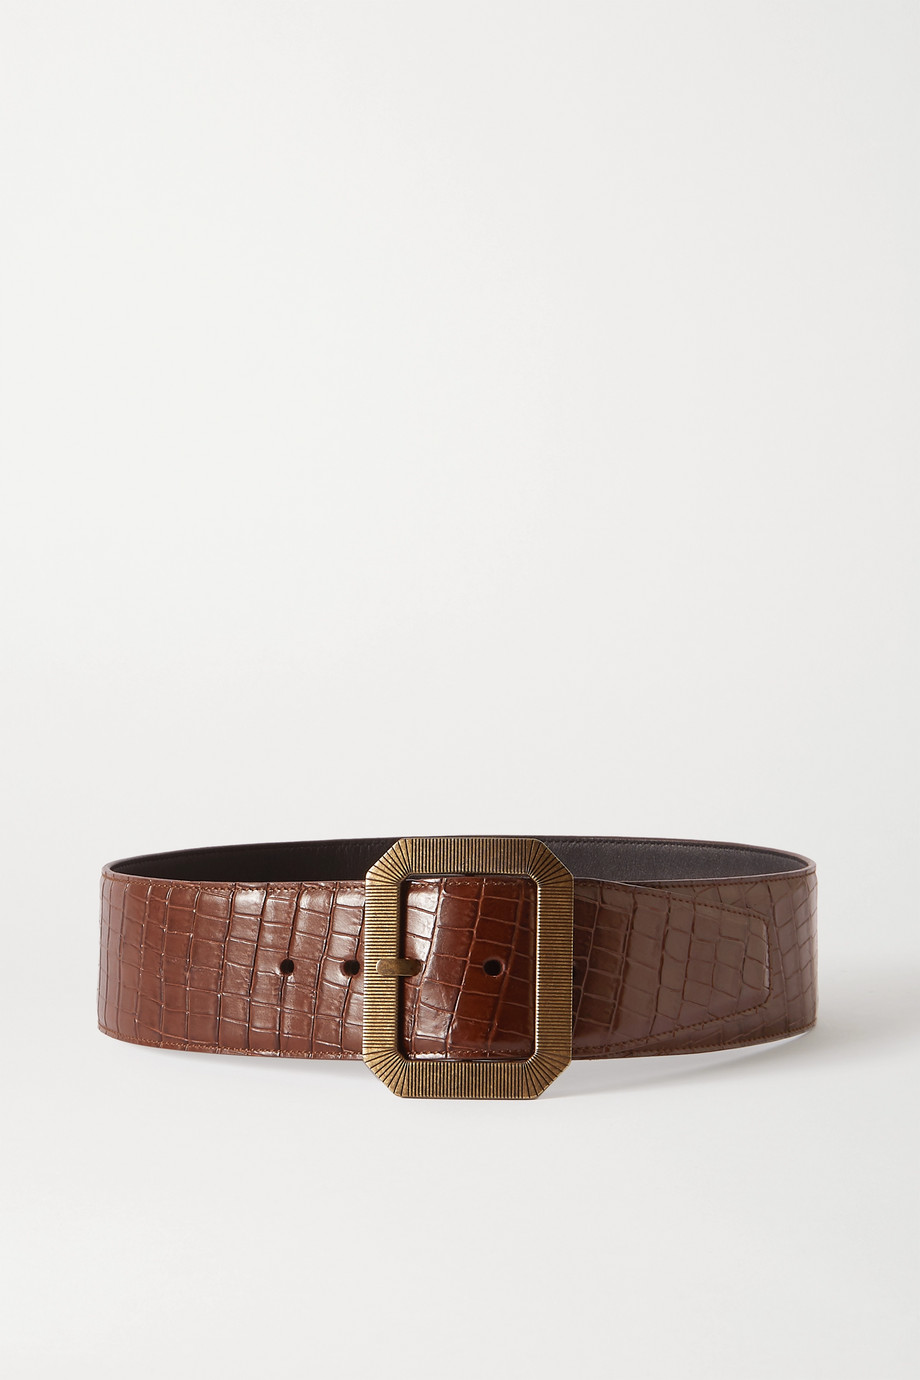 SAINT LAURENT Croc-effect leather waist belt